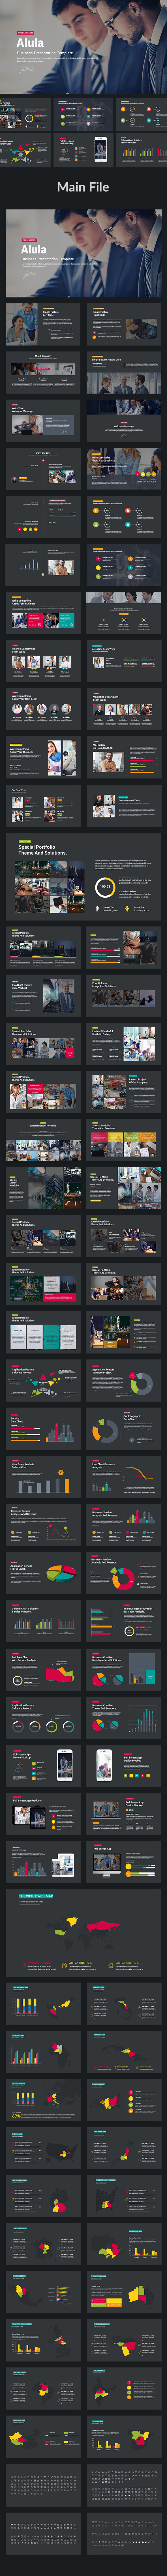 Alula - Business Google Slide Template - Google Slides Presentation Templates